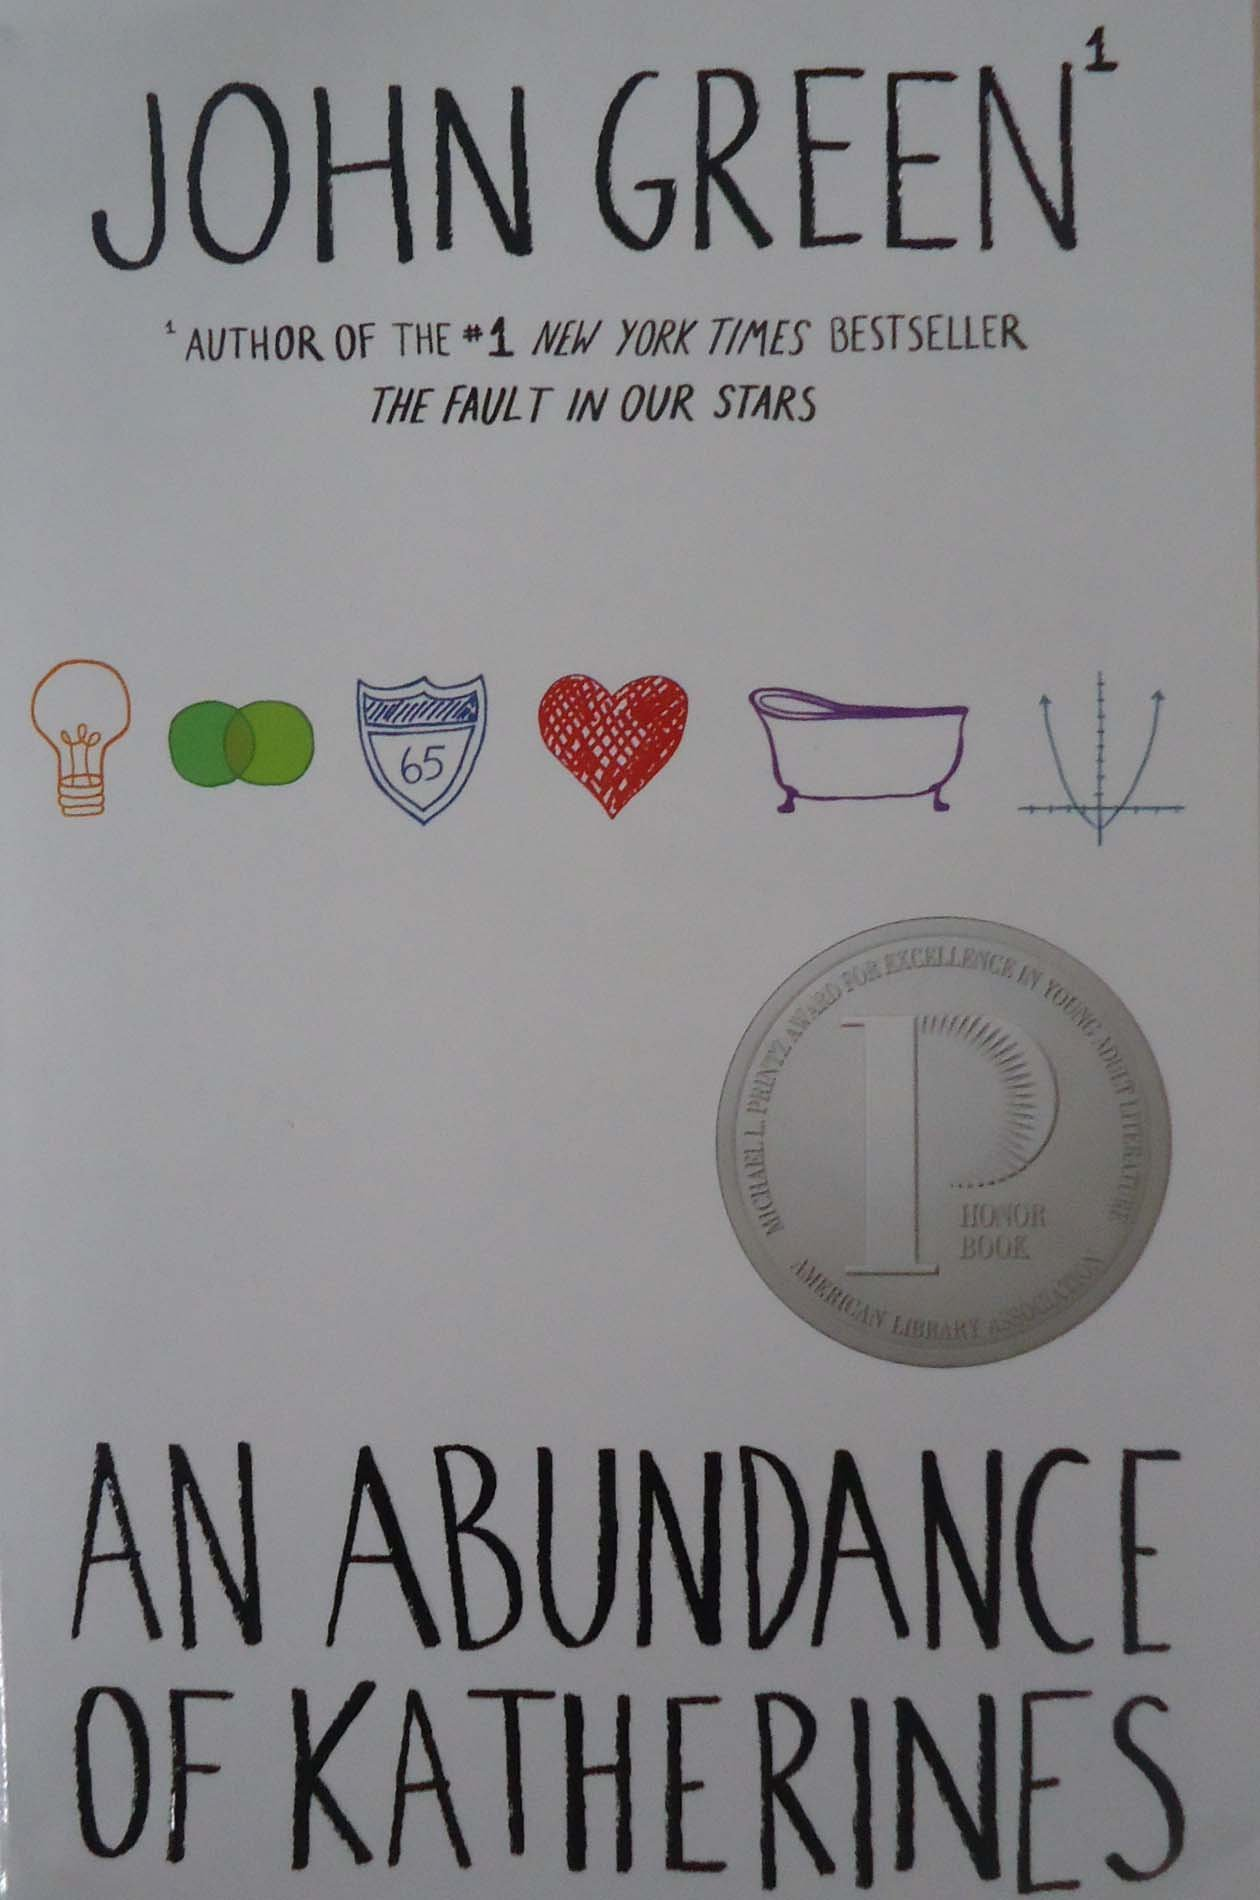 Amazon: An Abundance Of Katherines (9780142410707): John Green: Books